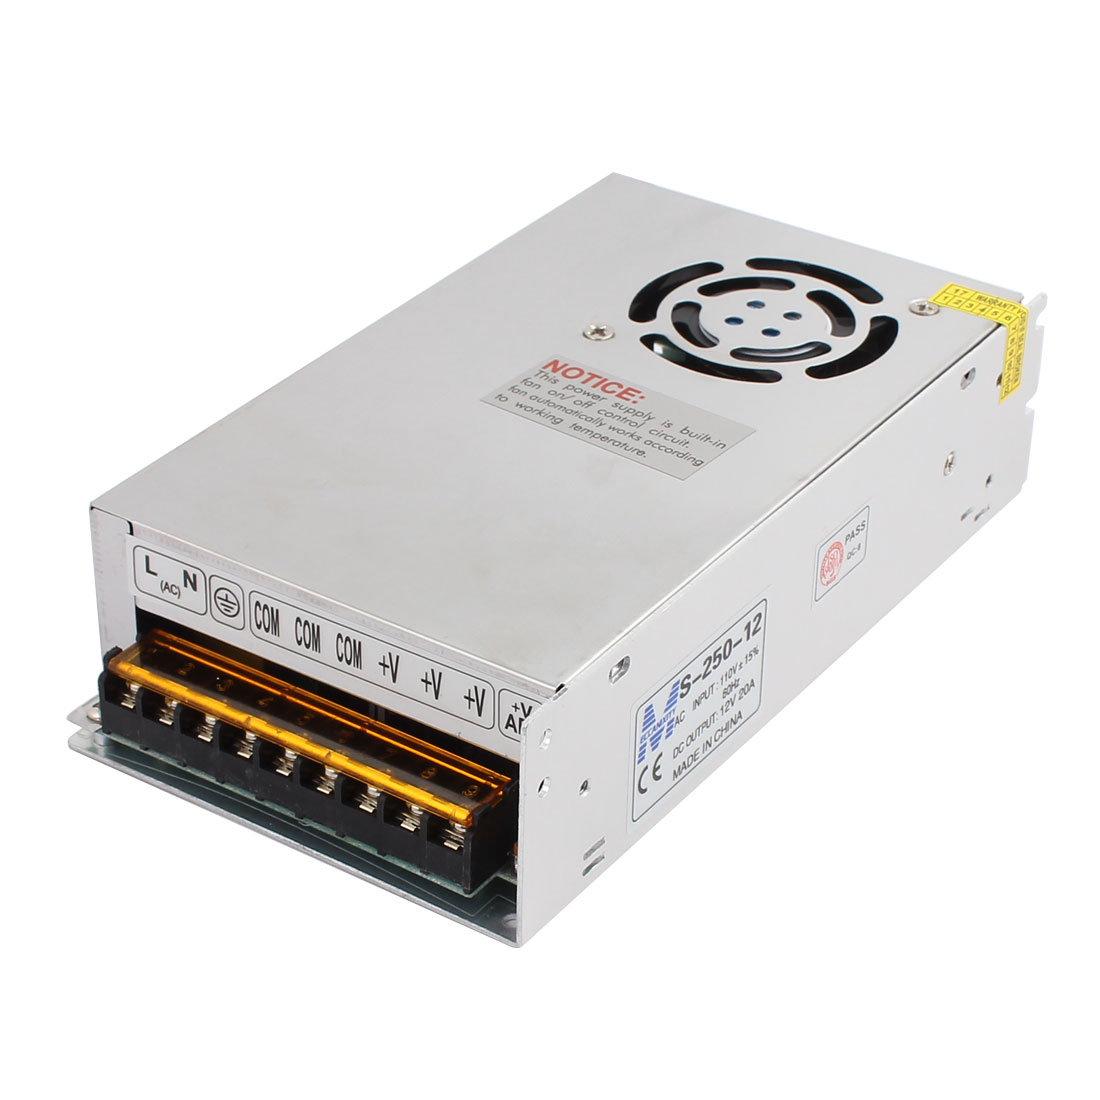 AC 110/220V DC 12V 20A 240W Switch Power Supply Adapter Converter for LED Strip